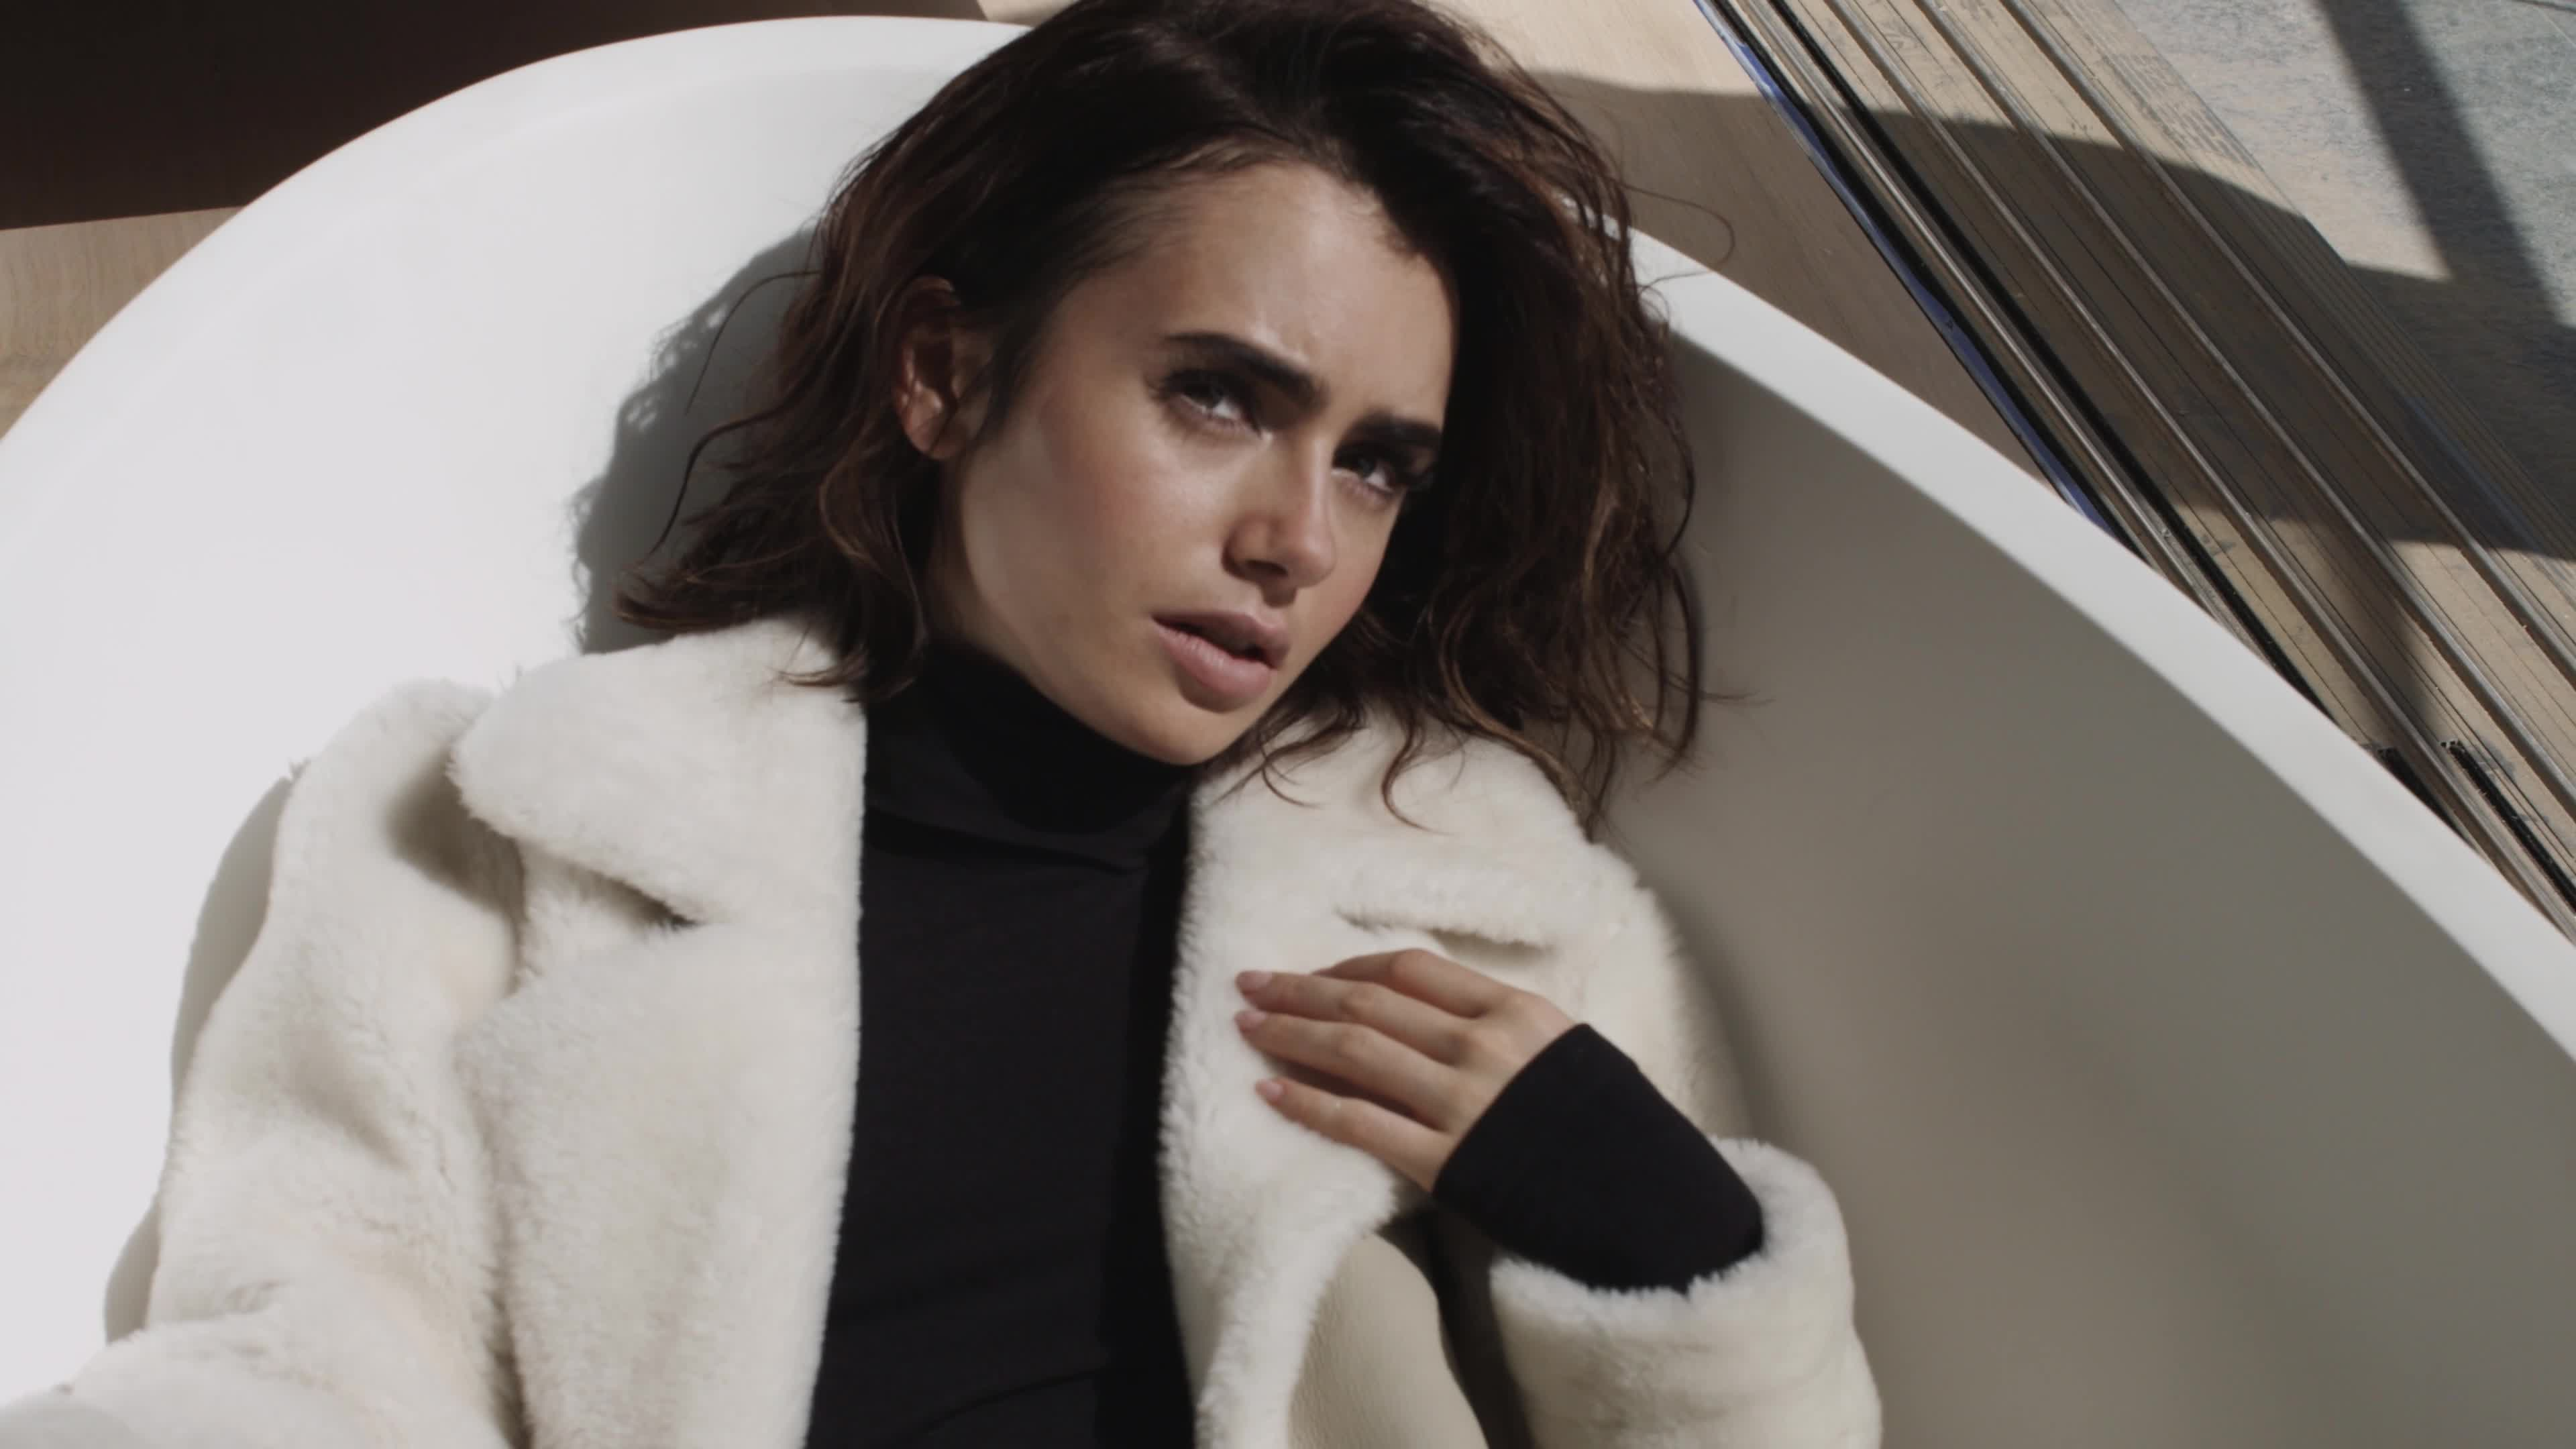 celebs, lily collins, tyler kindred, Lily Collins | Malibu Magazine GIFs